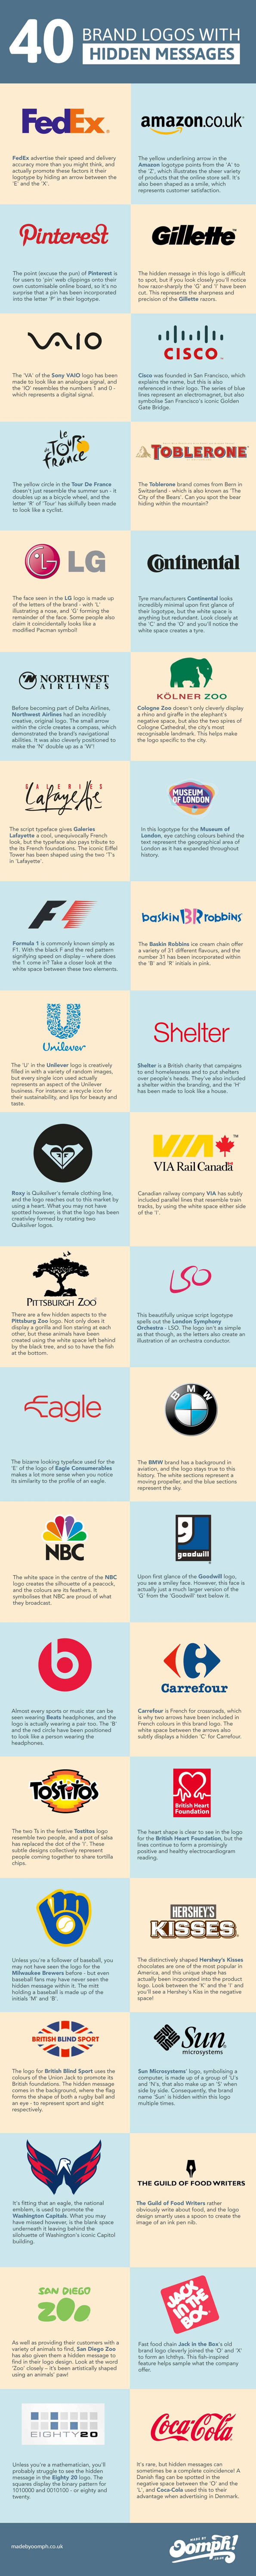 40 Examples of Good Branding Infographic image